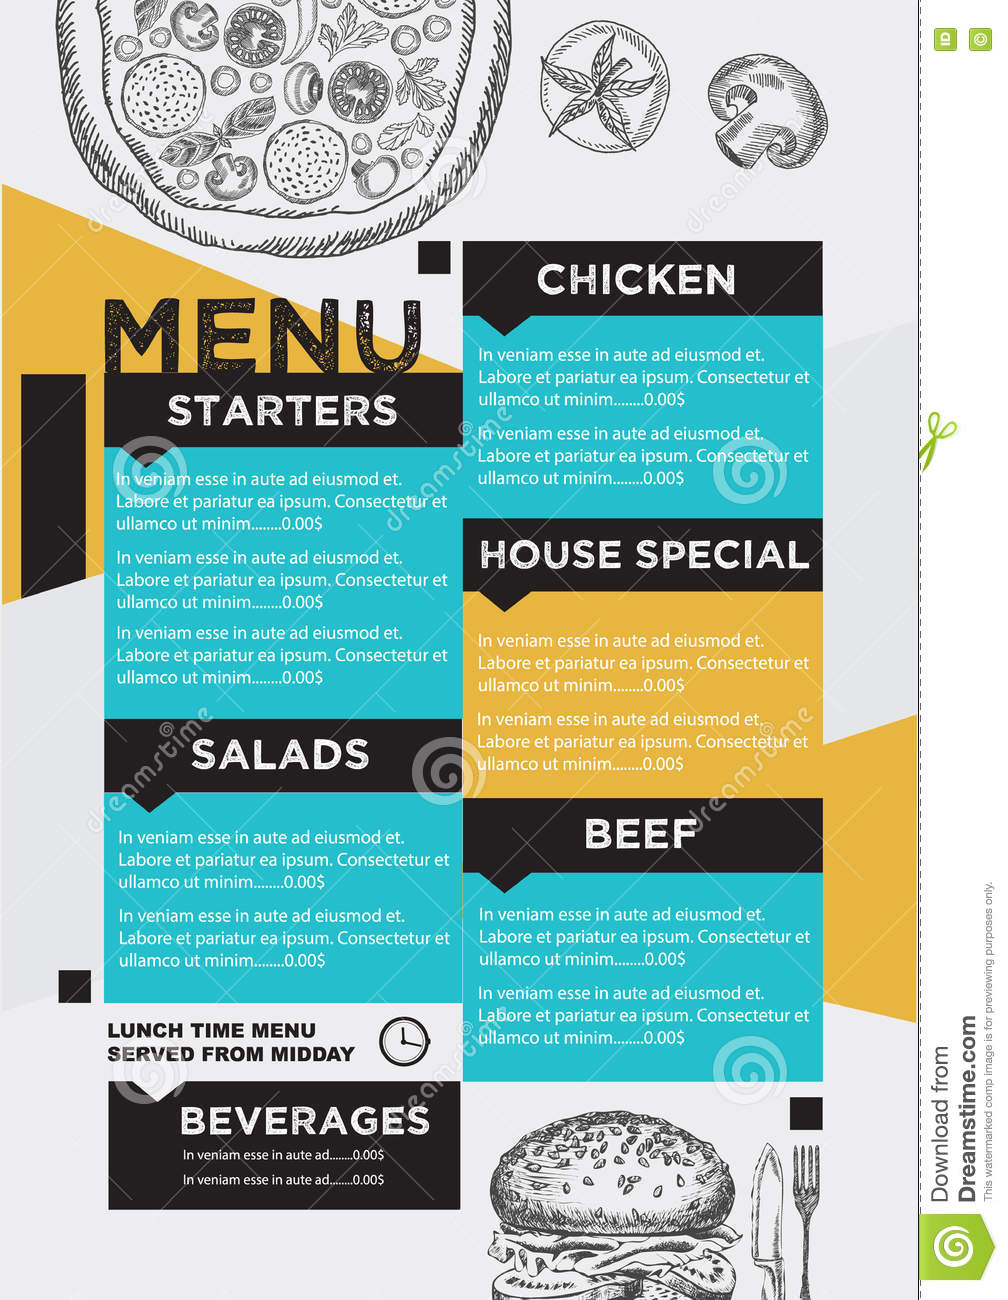 menu brochure template free - menu cafe restaurant template placemat food board design